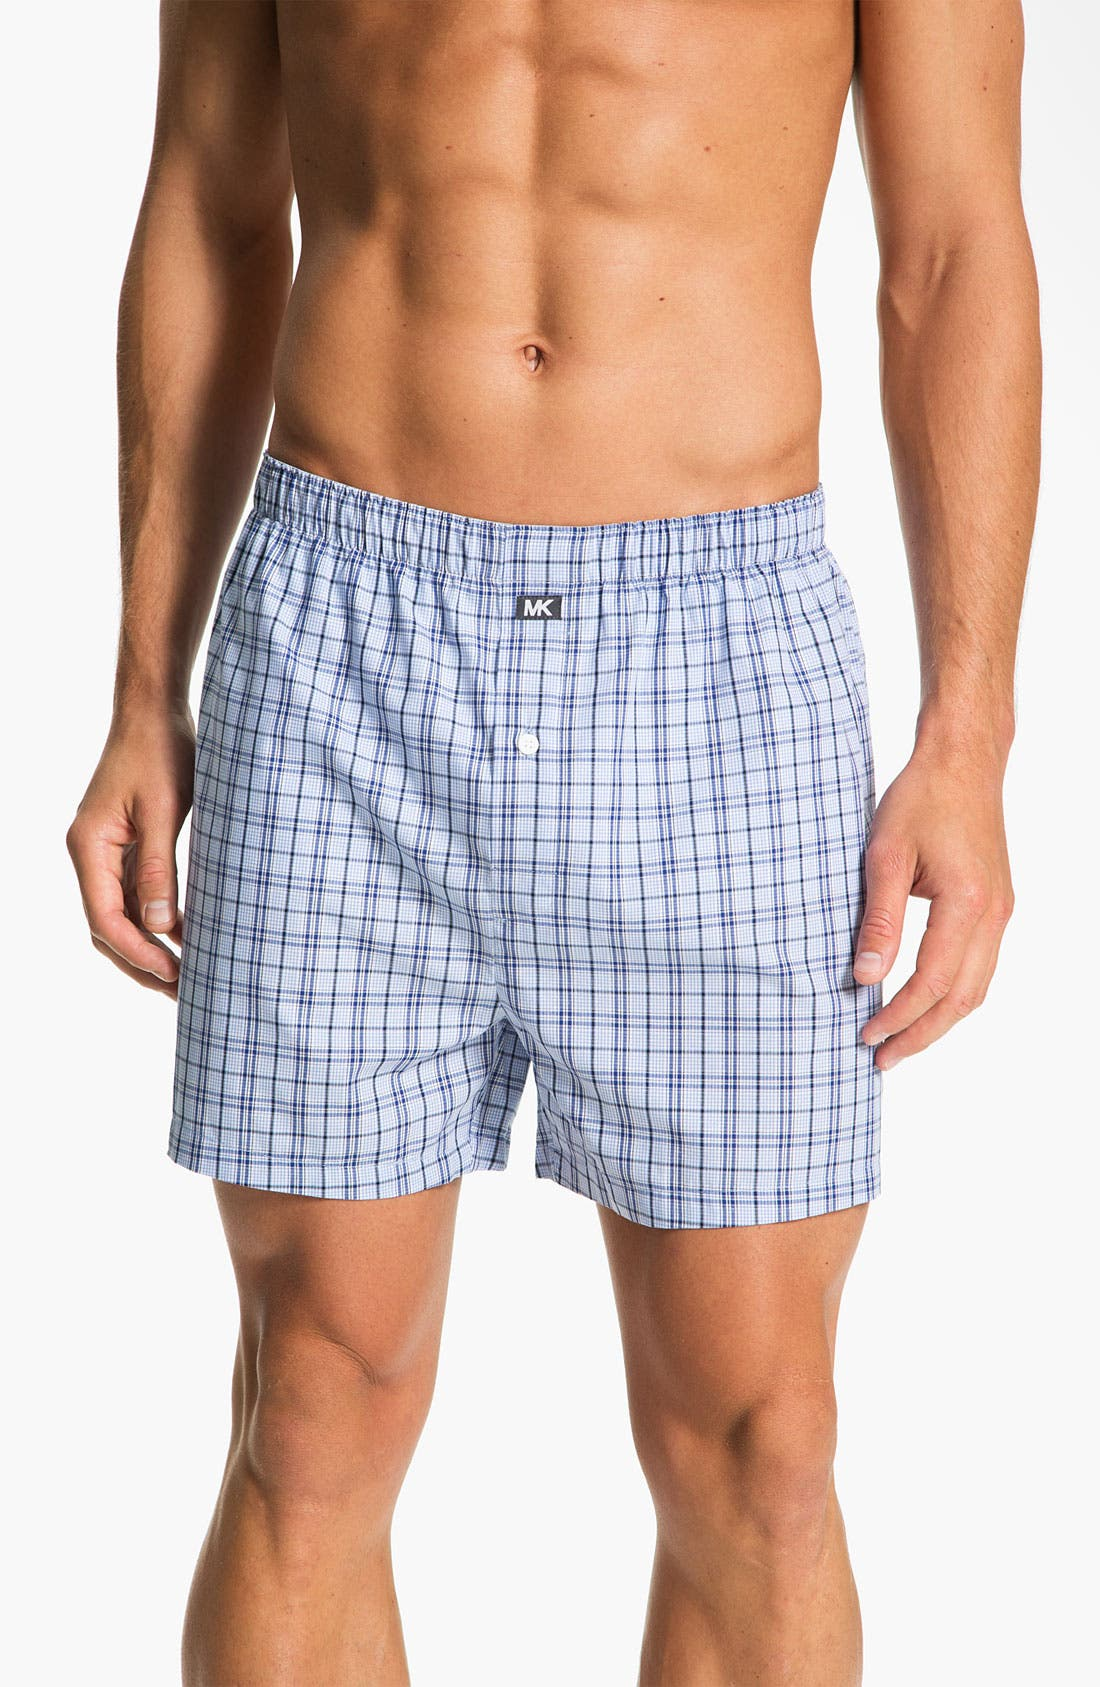 Alternate Image 1 Selected - Michael Kors Woven Boxers (Assorted 2-Pack)